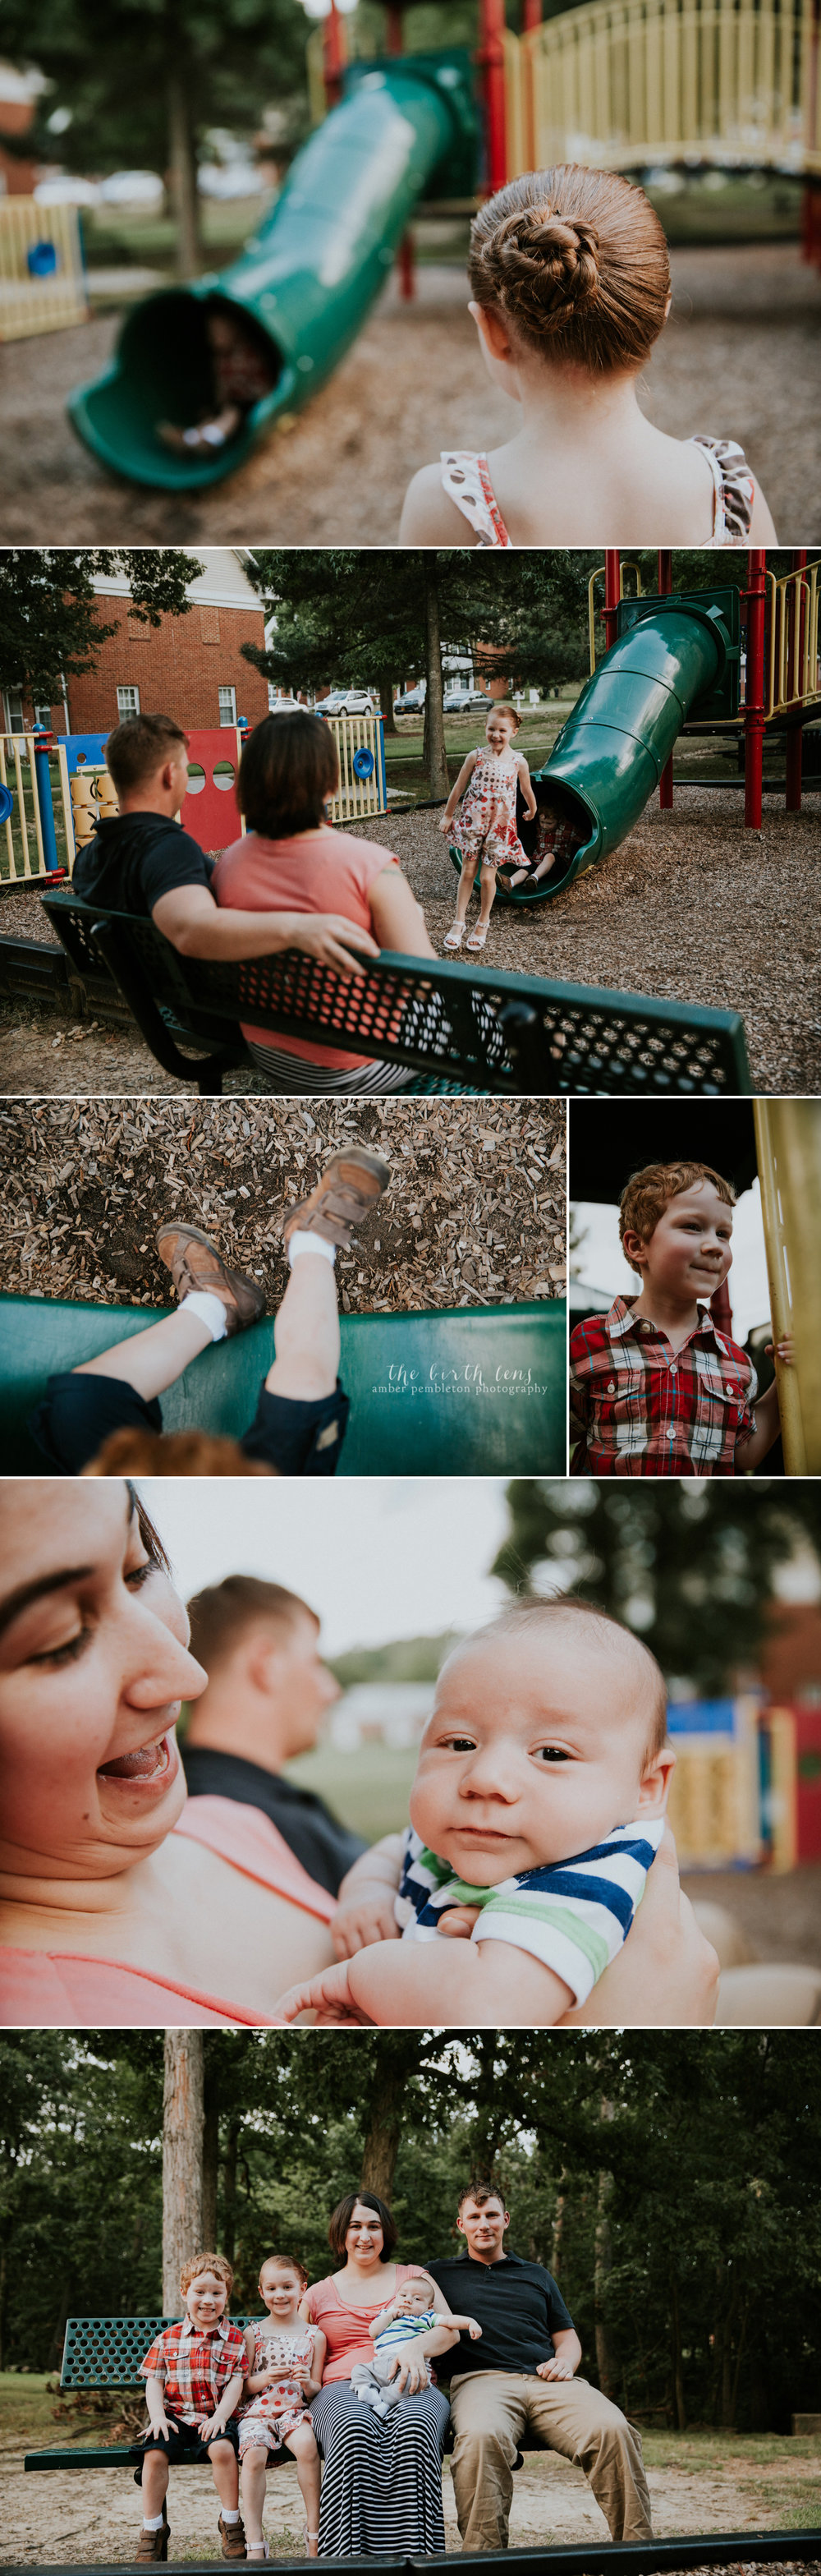 newborn-session-with-family-at-park-reno.jpg